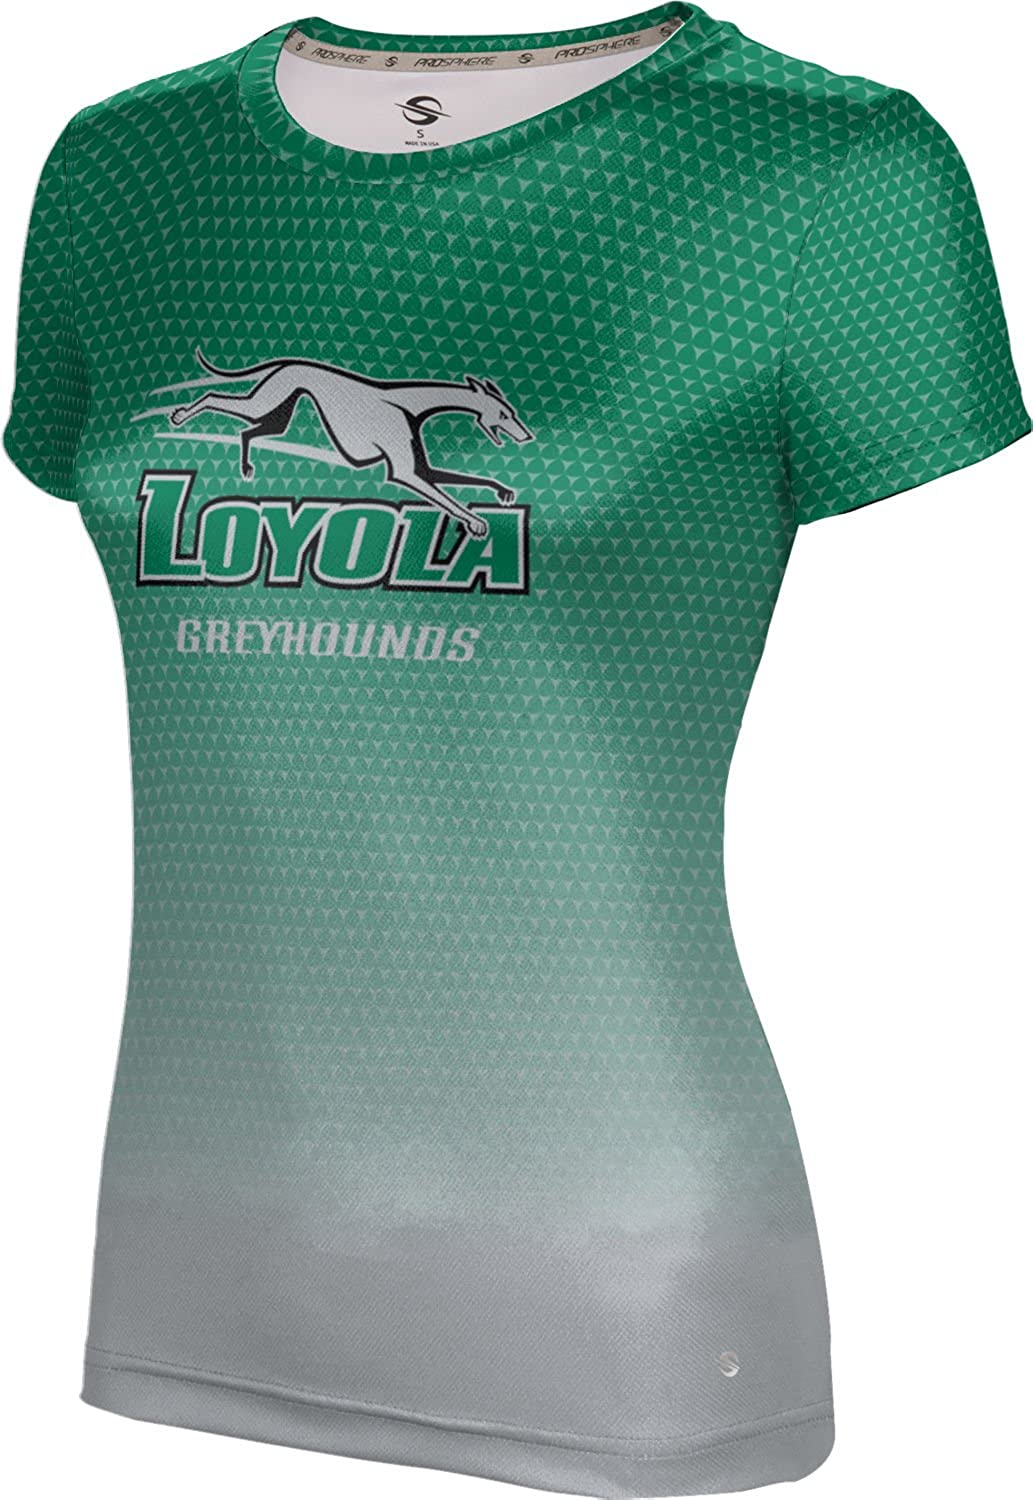 ProSphere Women's Loyola University Maryland Zoom Tech Tee